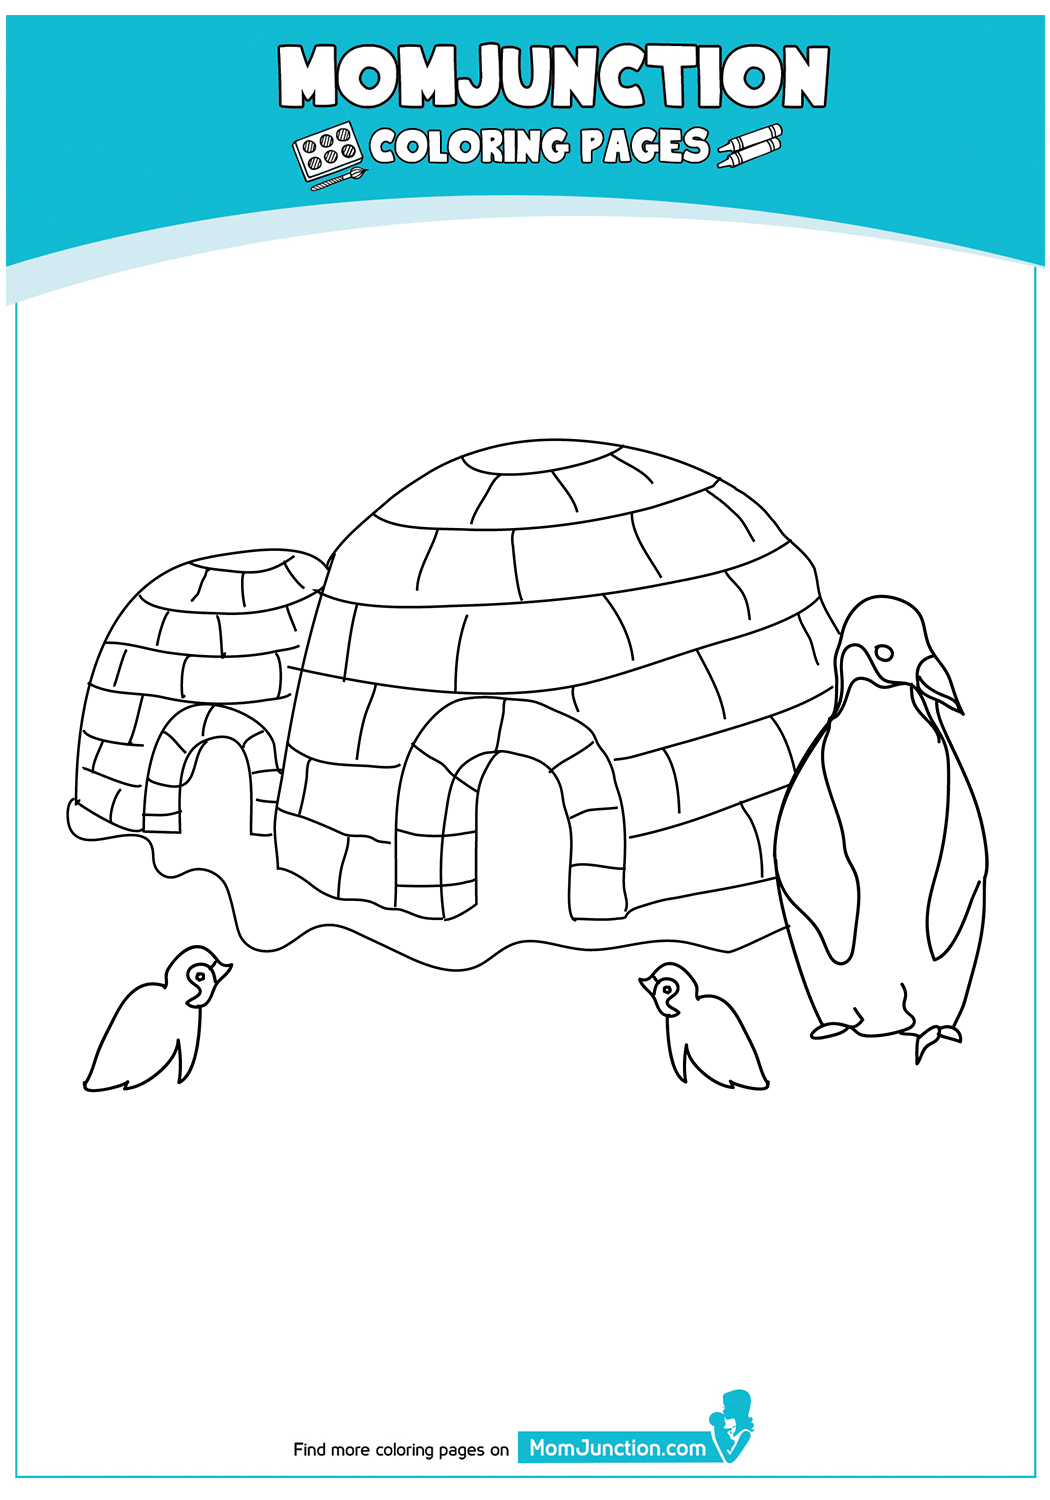 igloo-and-the-penguin-17